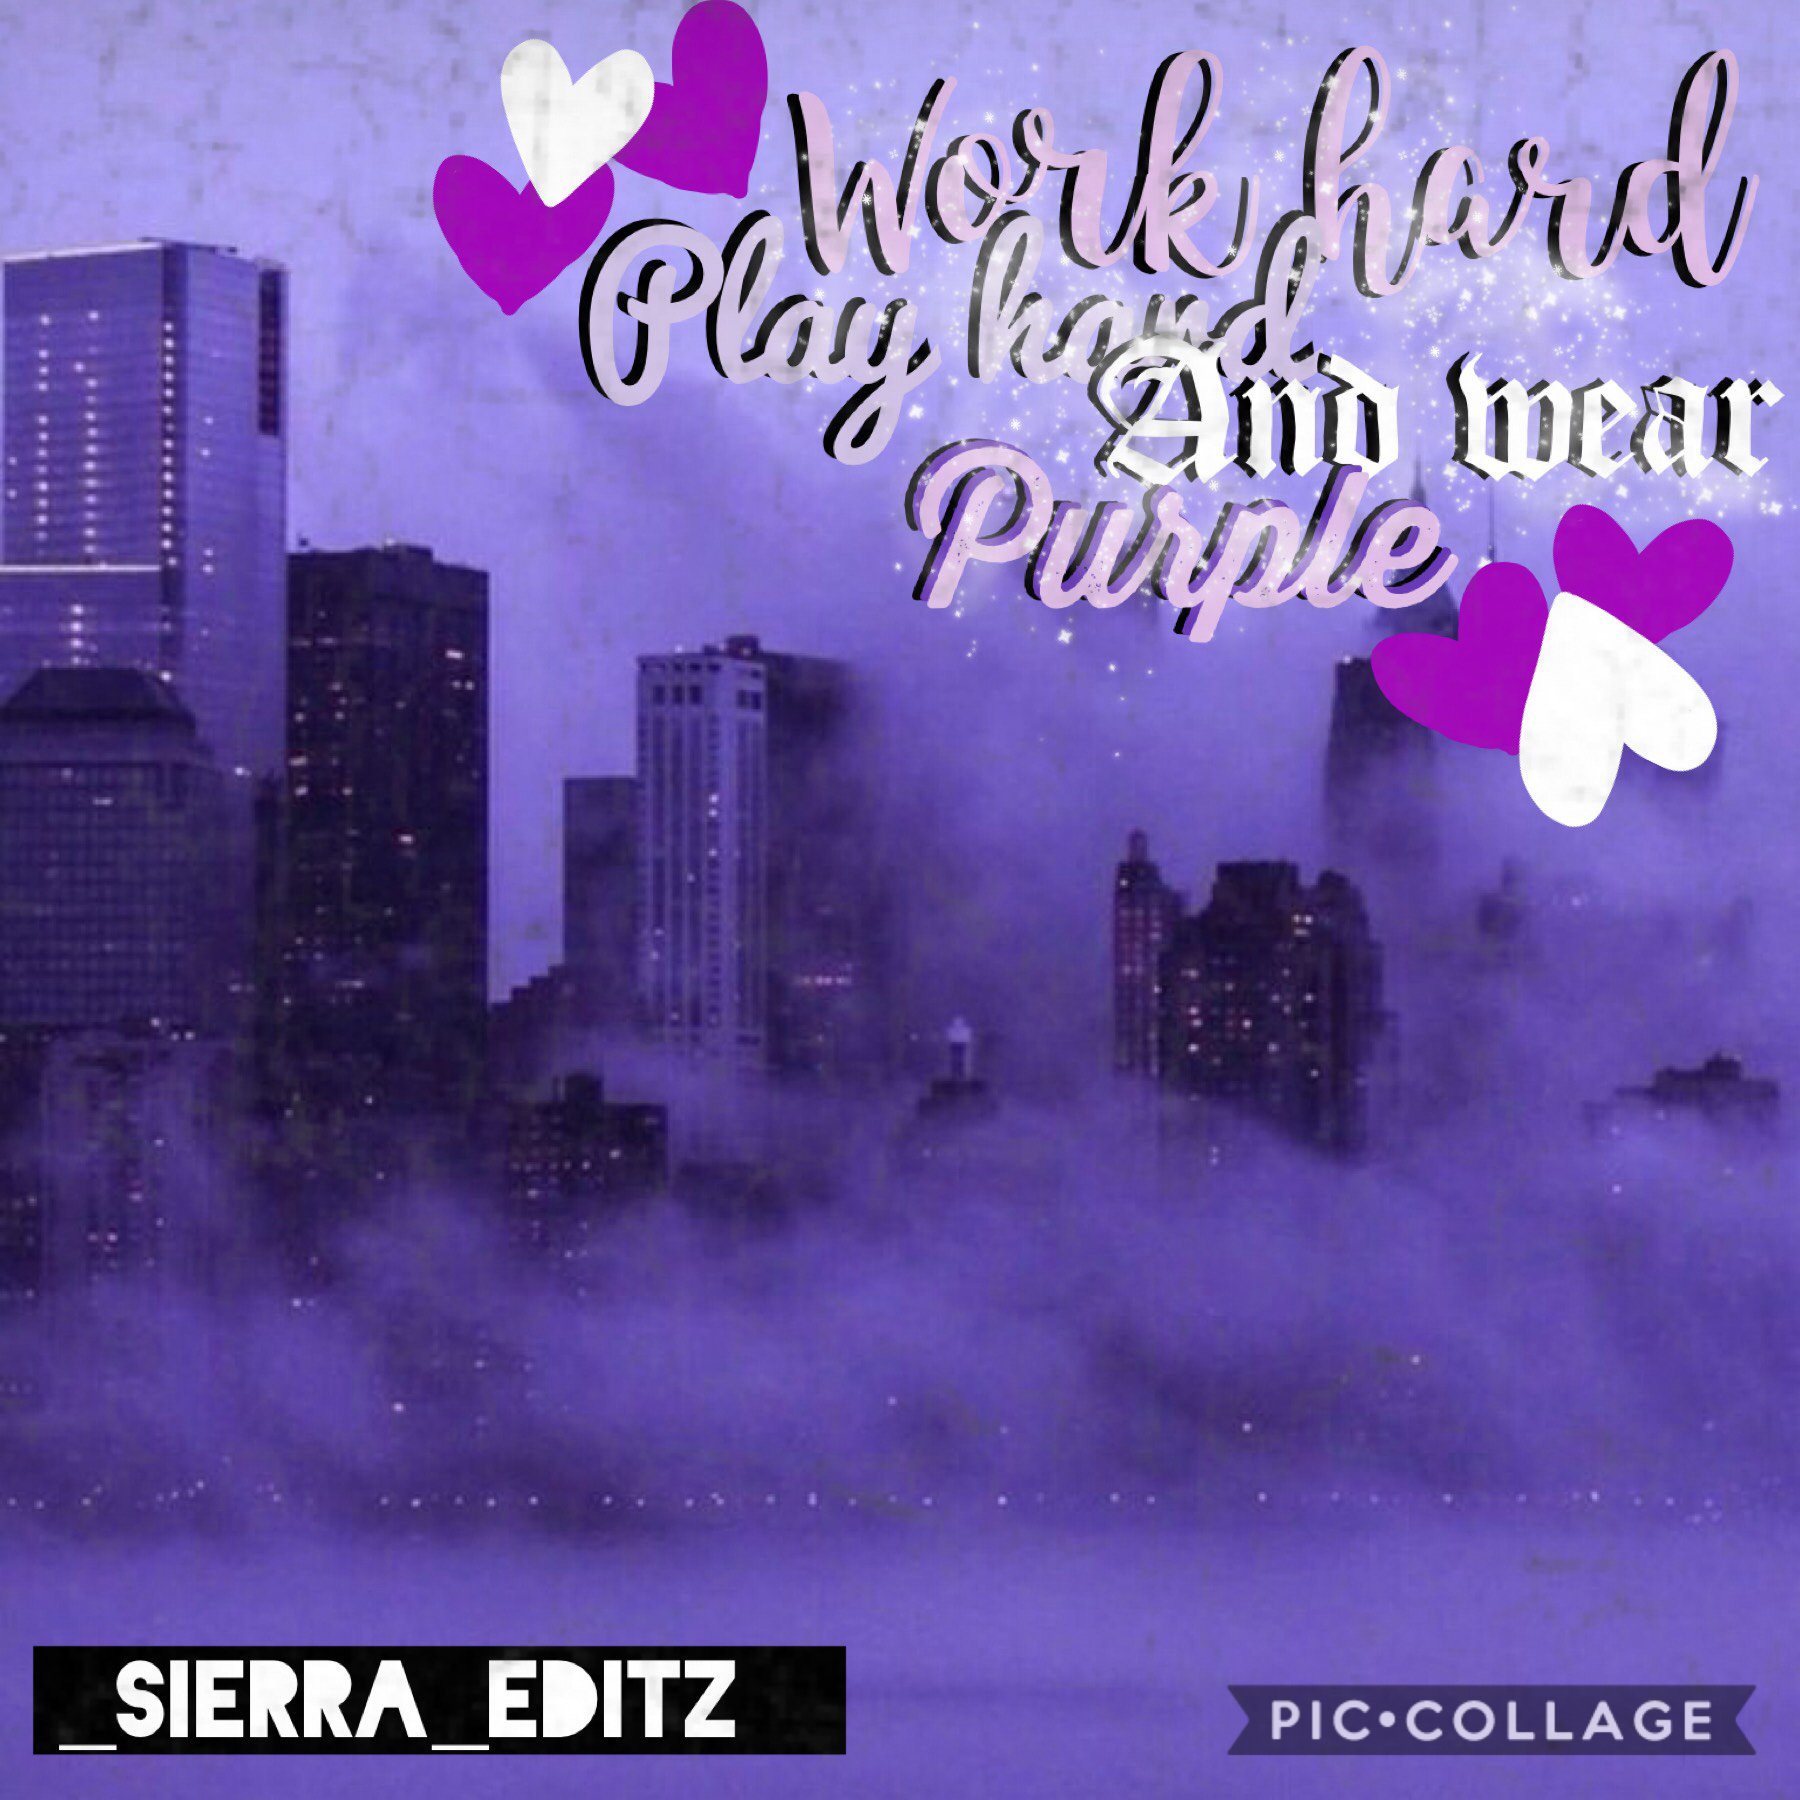 Hiya:) Tap 💜My name is Sierra and I'm new! Here's a first post for you made by me! Wanna be friends?💜